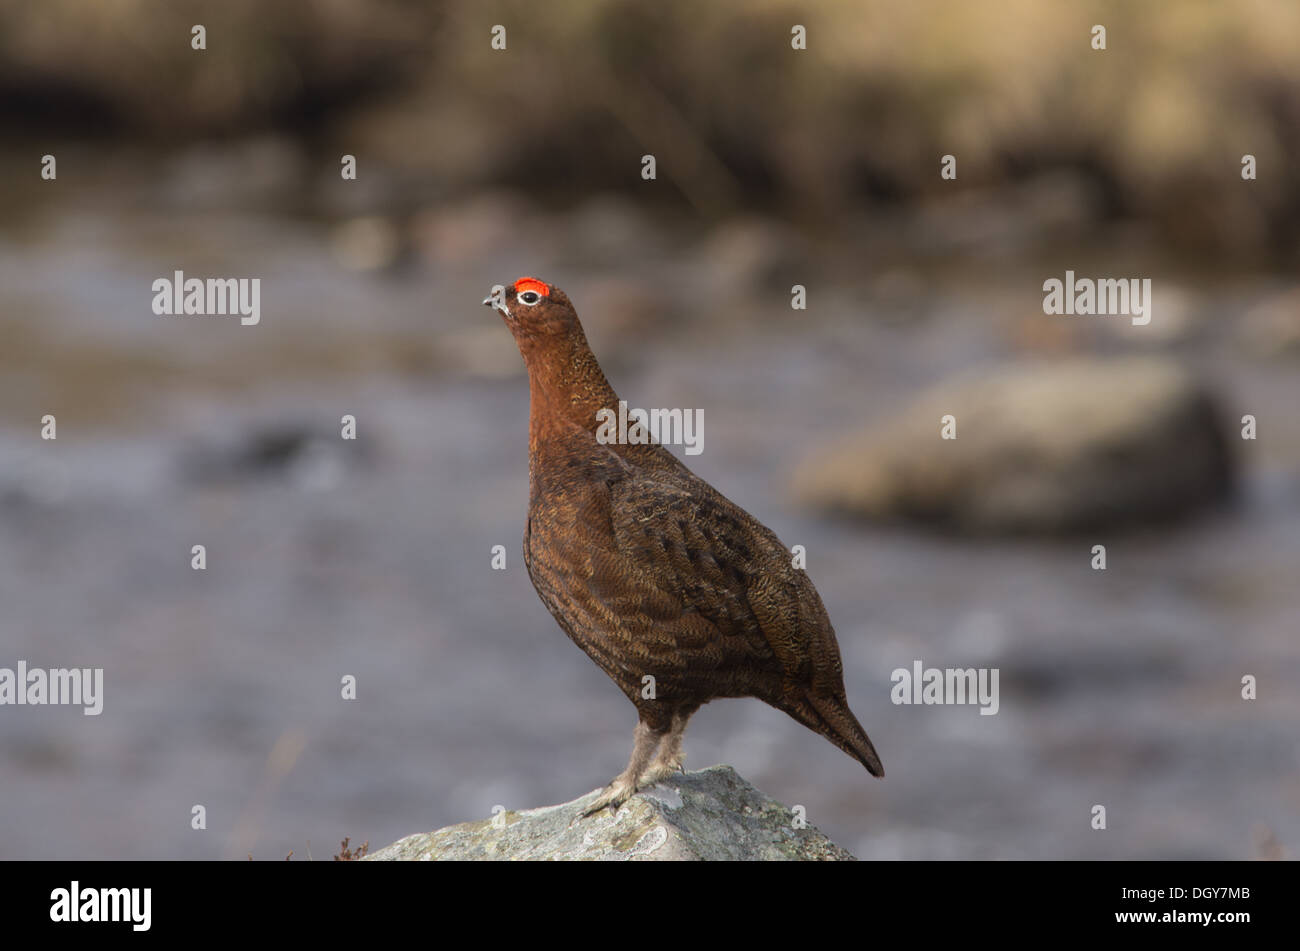 A red grouse standing on a rock, in front of a river,x in the Cairngorms - Stock Image